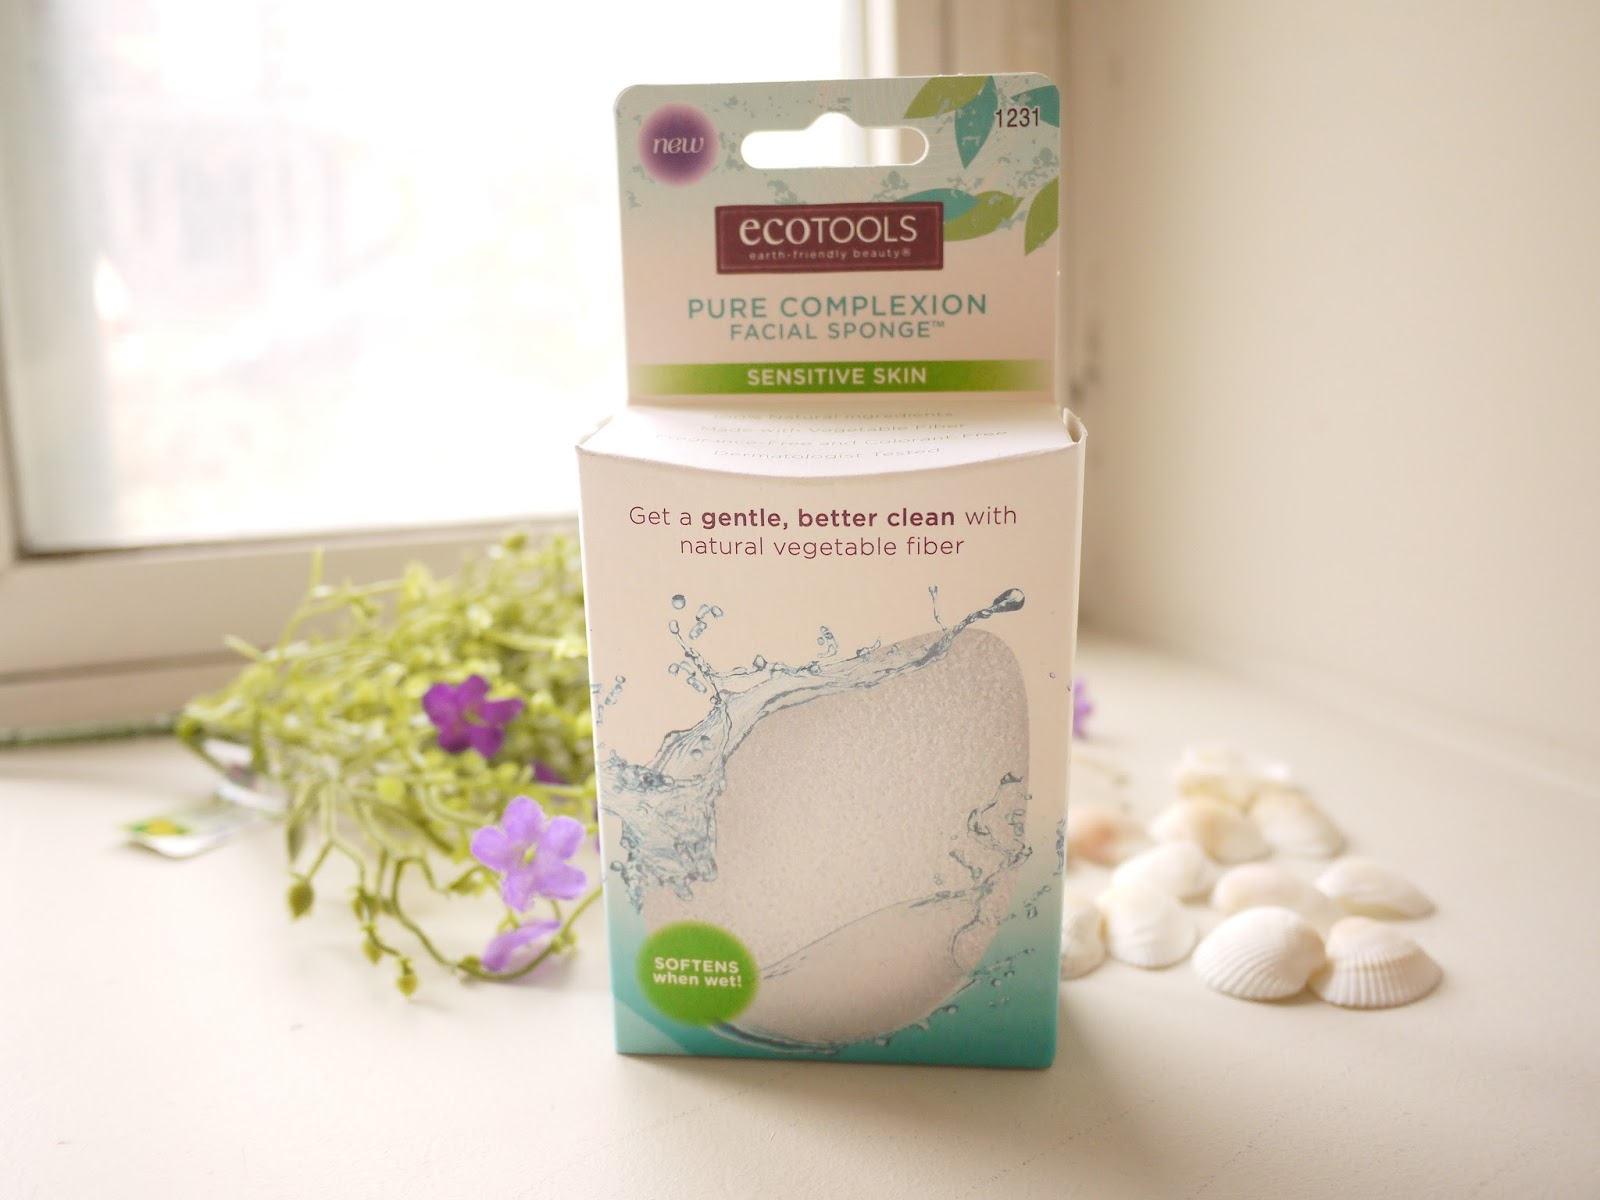 Ecotools Pure Complexion Facial Sponge review